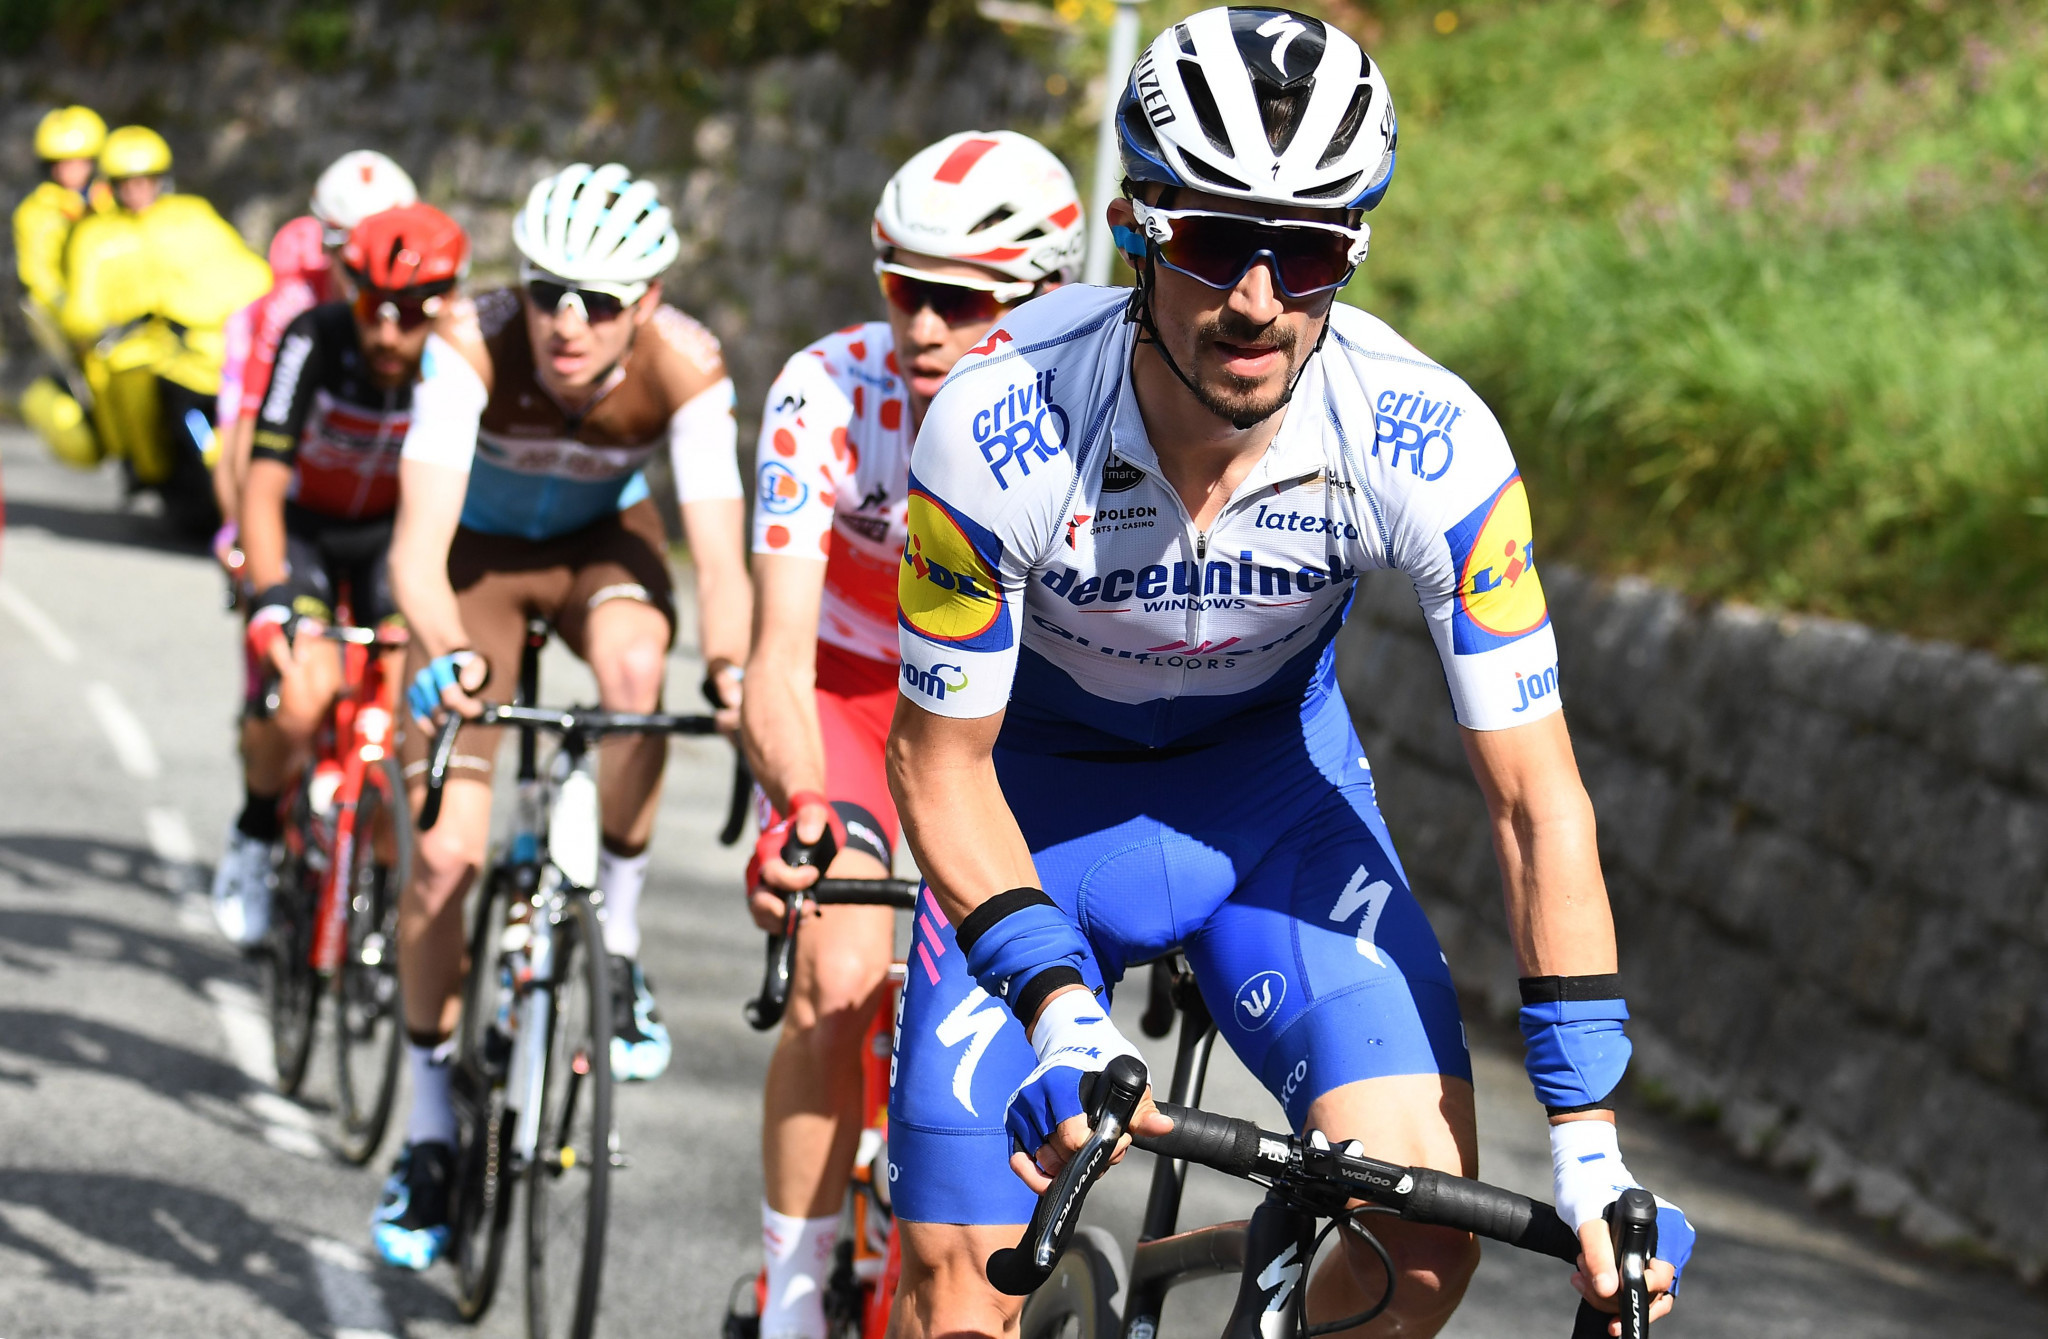 Julian Alaphilippe has expressed concerns should the race be held without spectators ©Getty Images